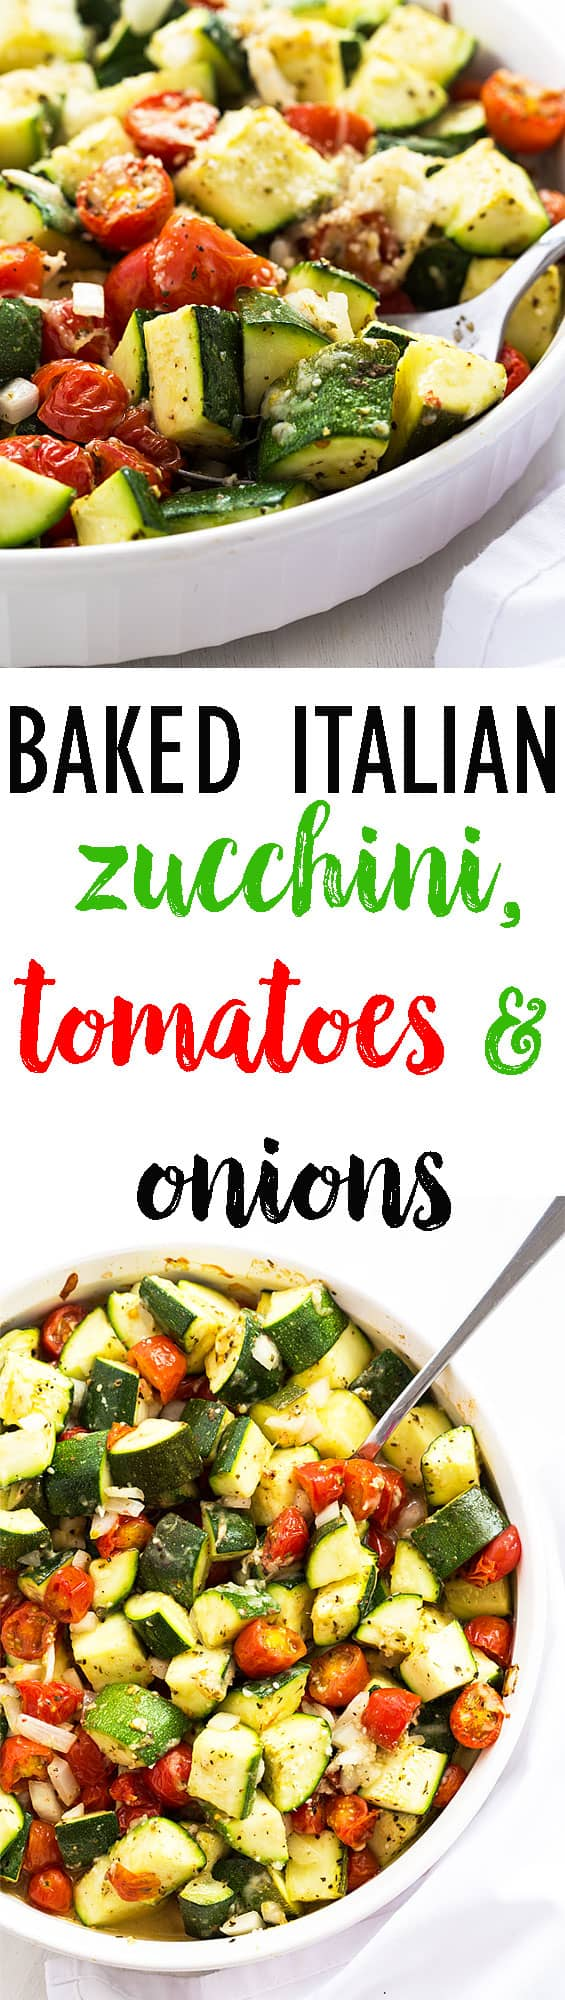 A two image vertical collage of baked Italian zucchini, tomatoes and onions with overlay text.